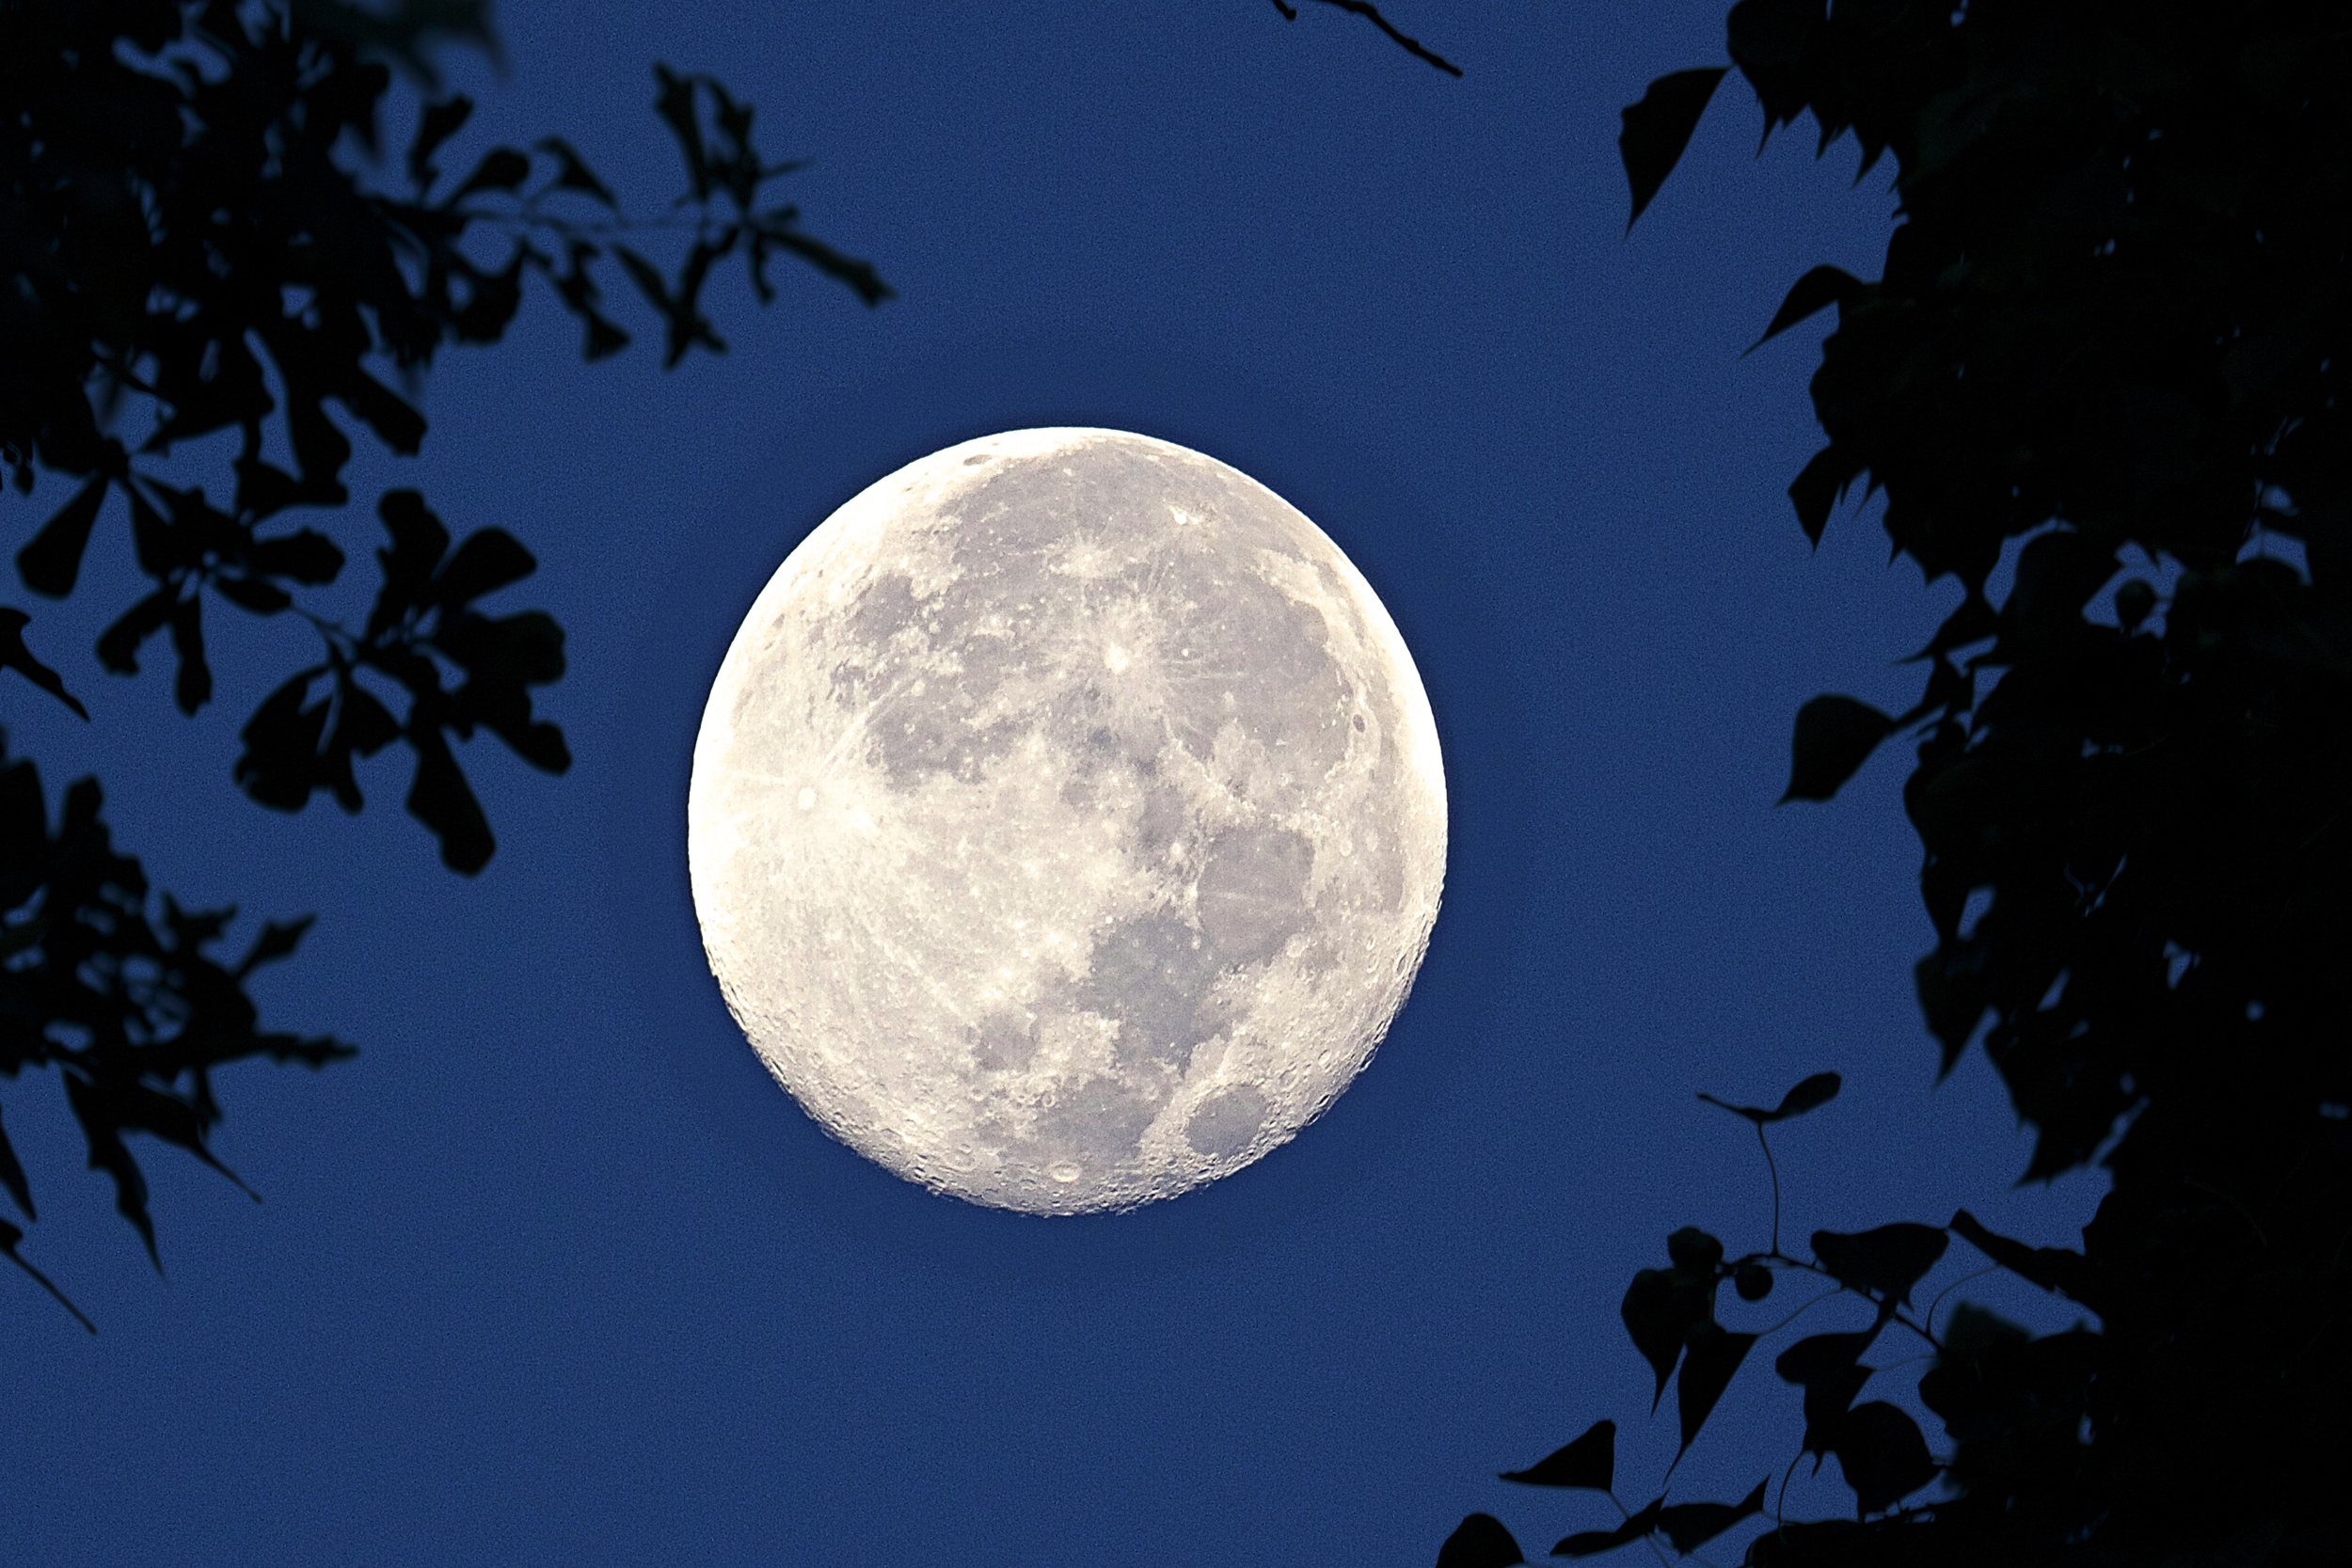 It was a full Harvest moon setting early one September morning over the Broward.. It